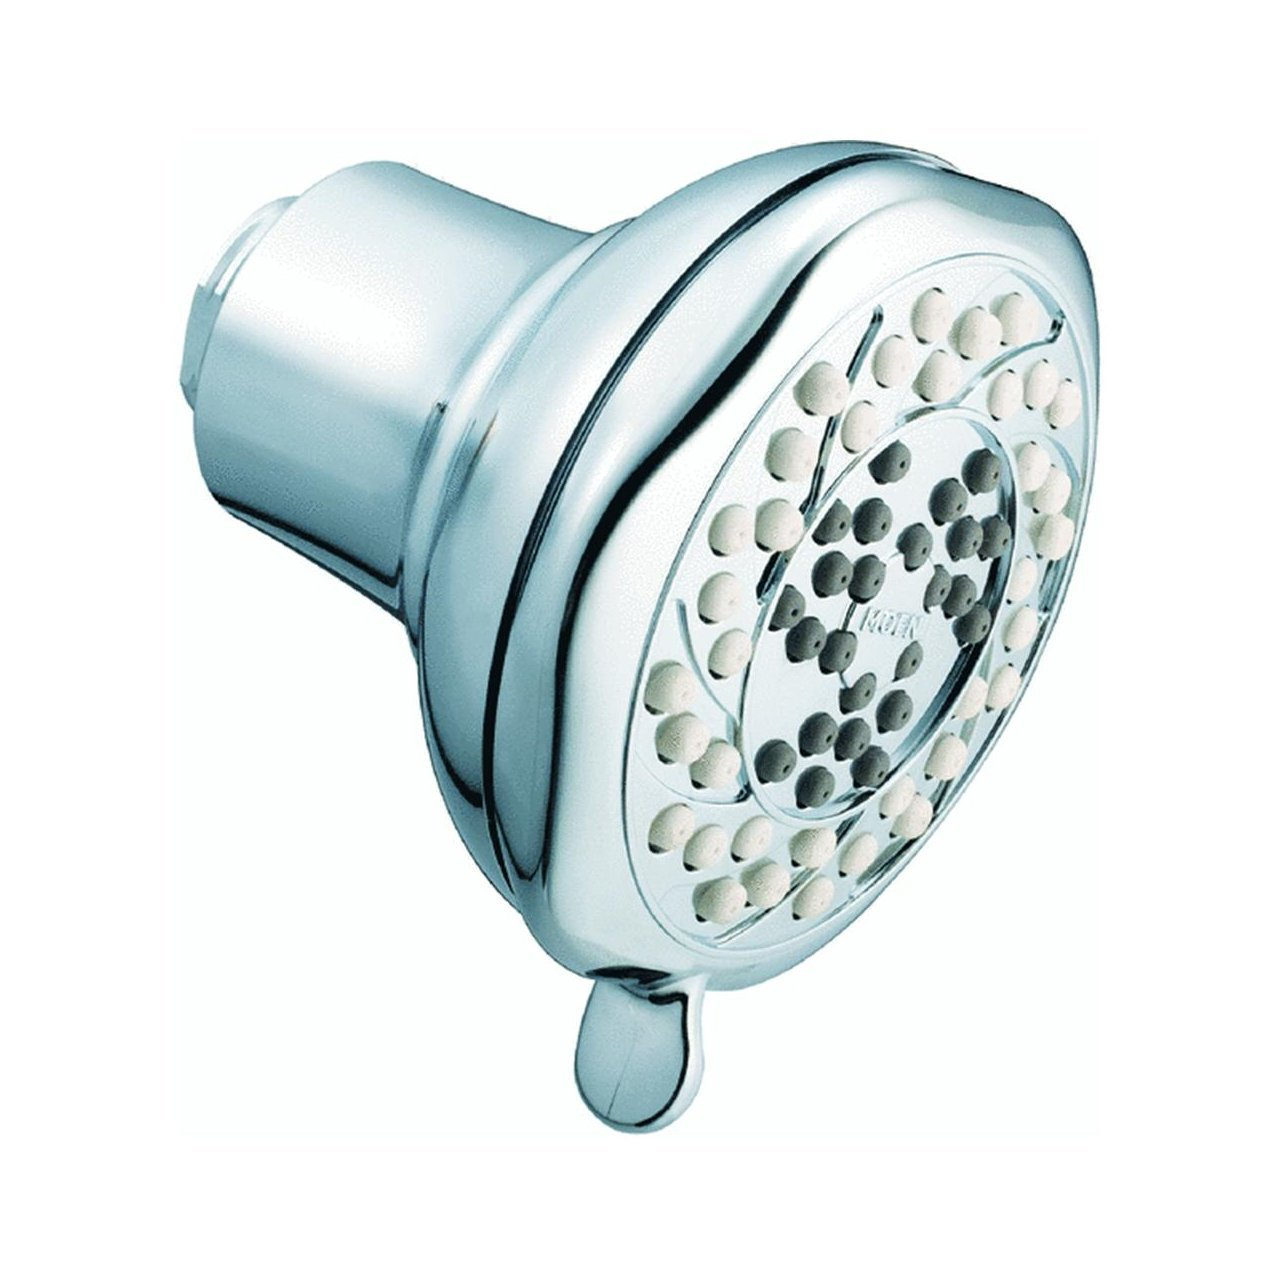 Moen 21313 2.5 GPM Multi-Function Shower Head from the Enliven Collection